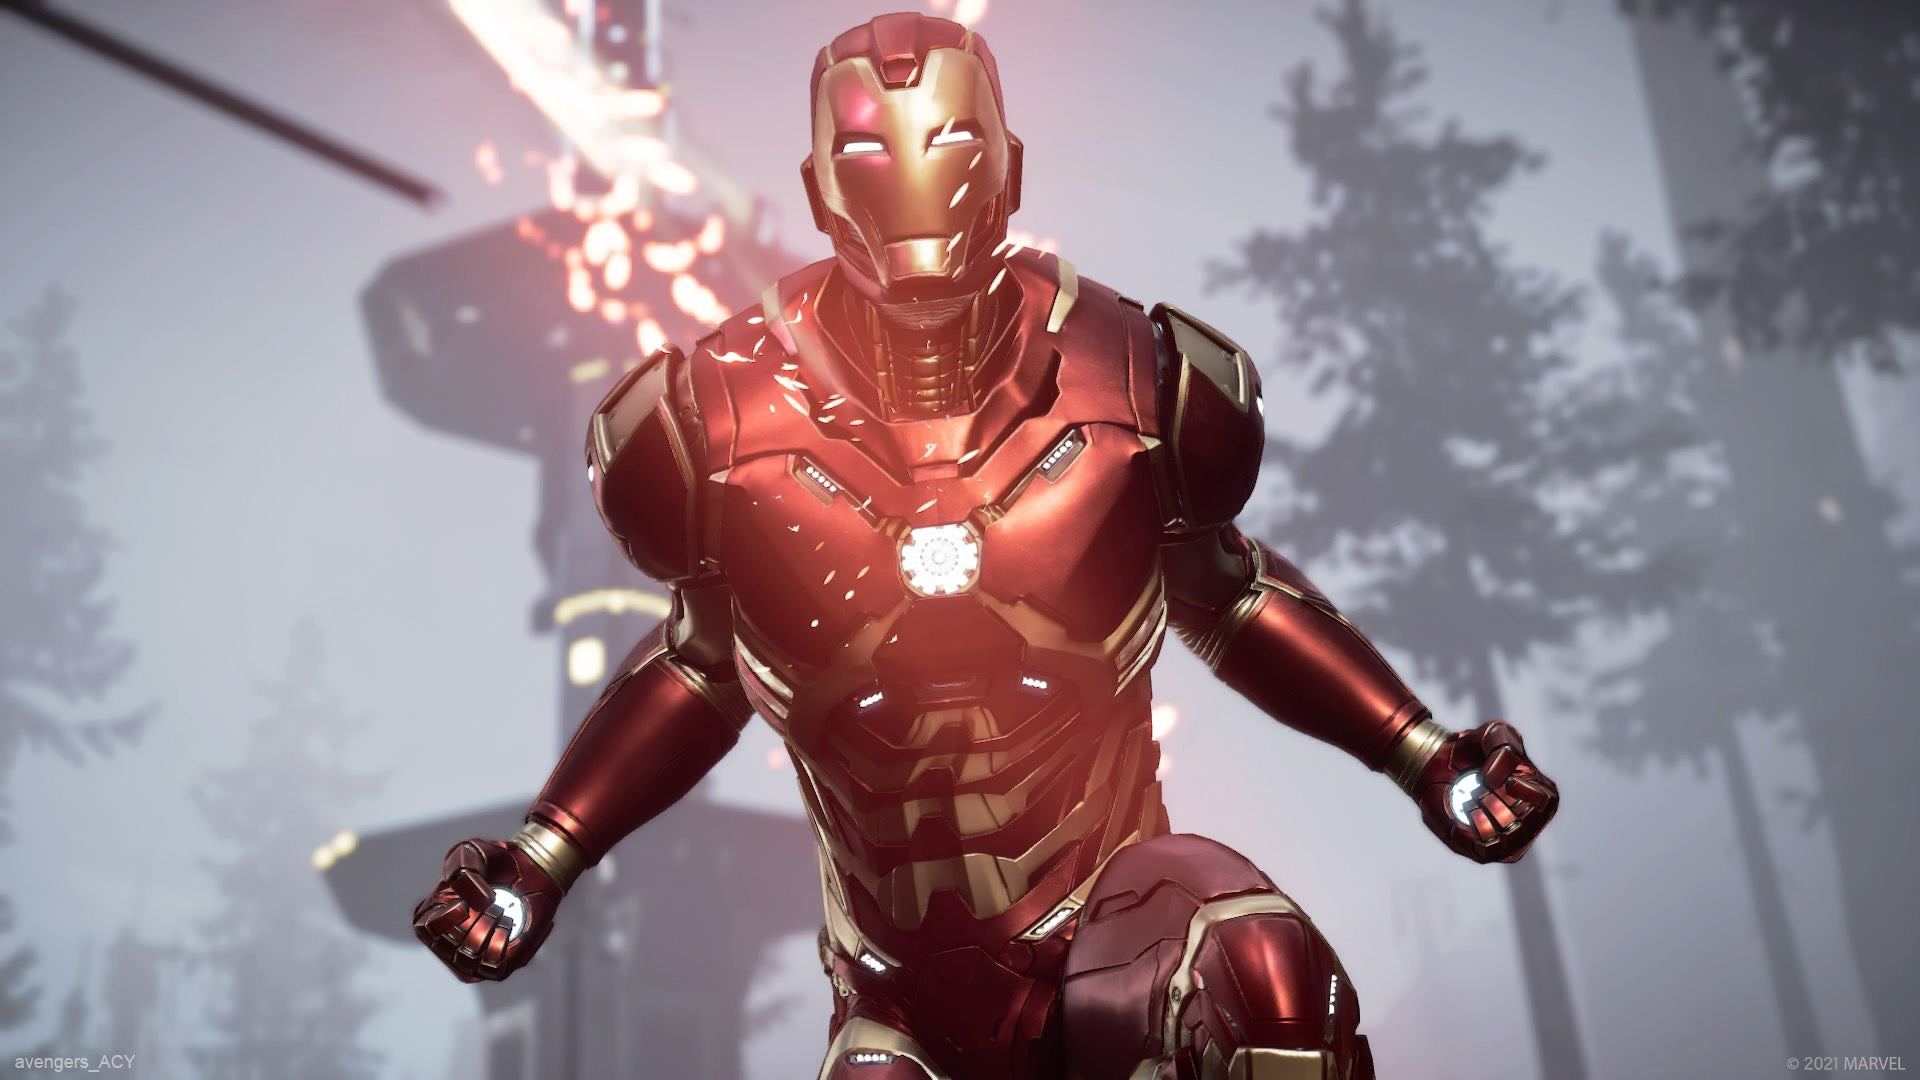 Iron Man ready to release energy from his suit's arc reactor